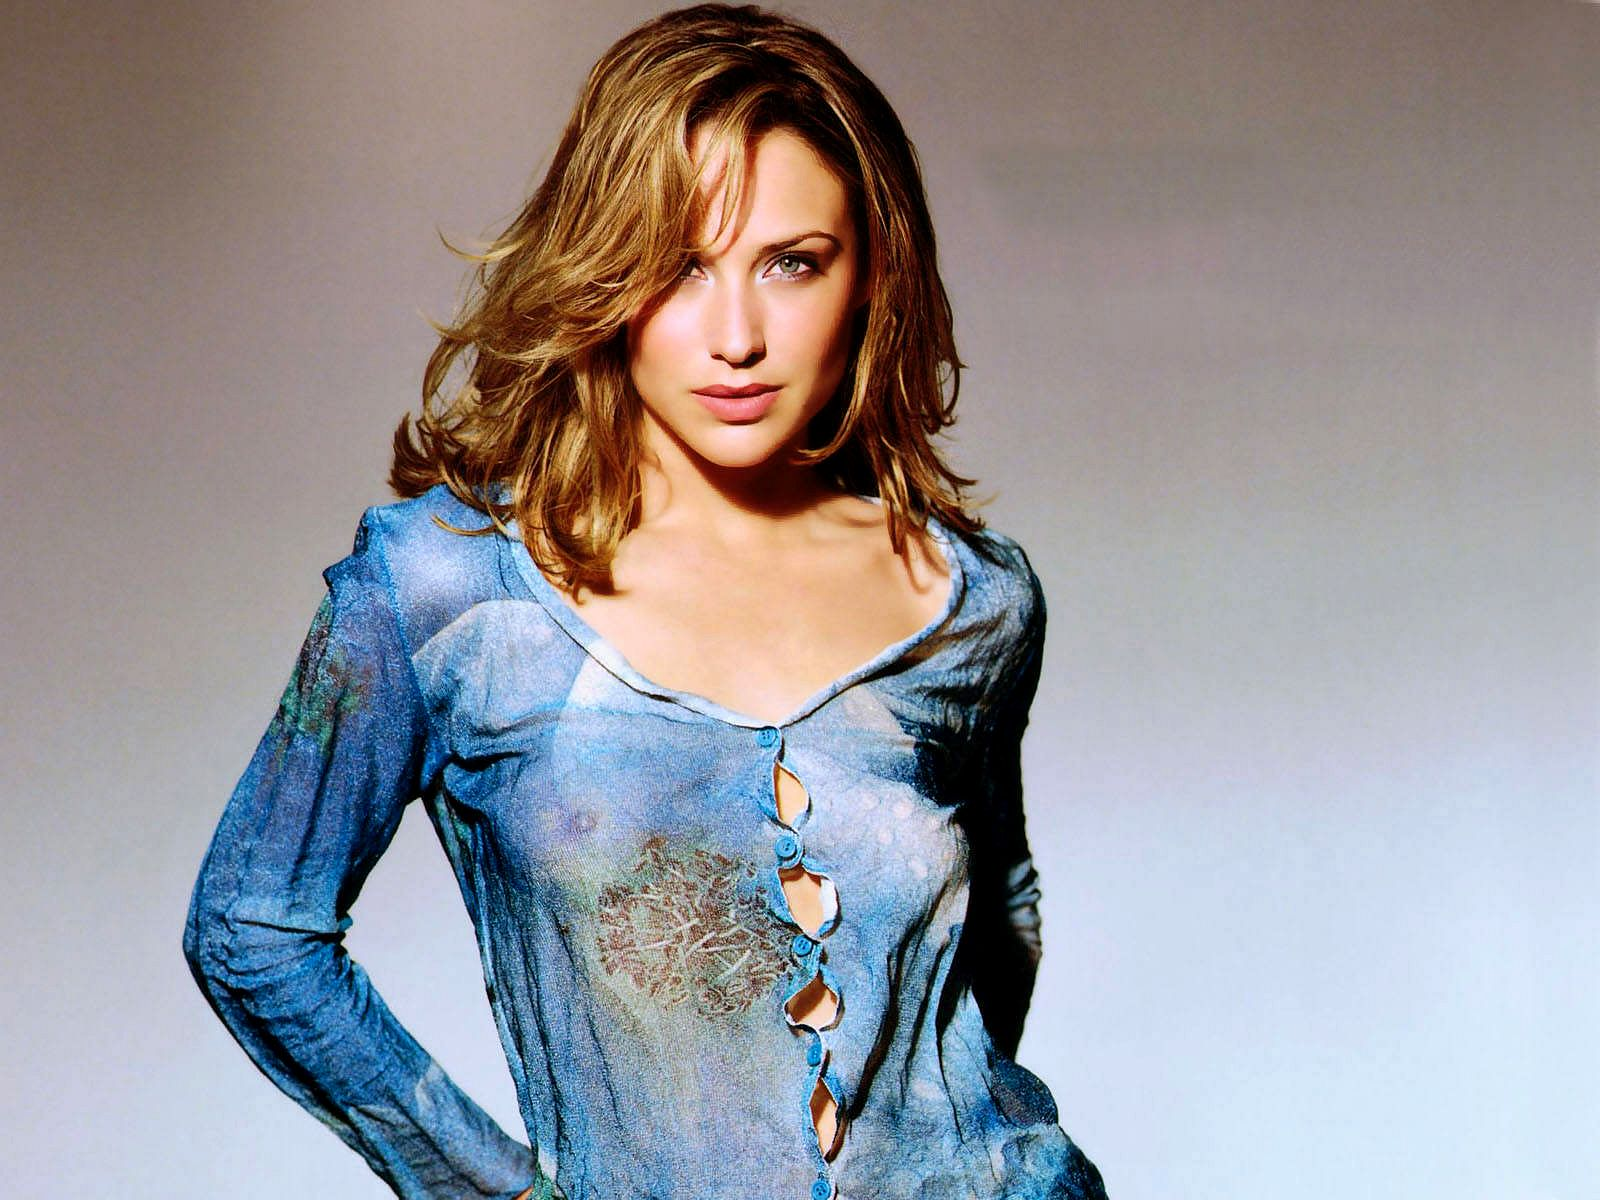 Claire-Forlani-cleavages pic